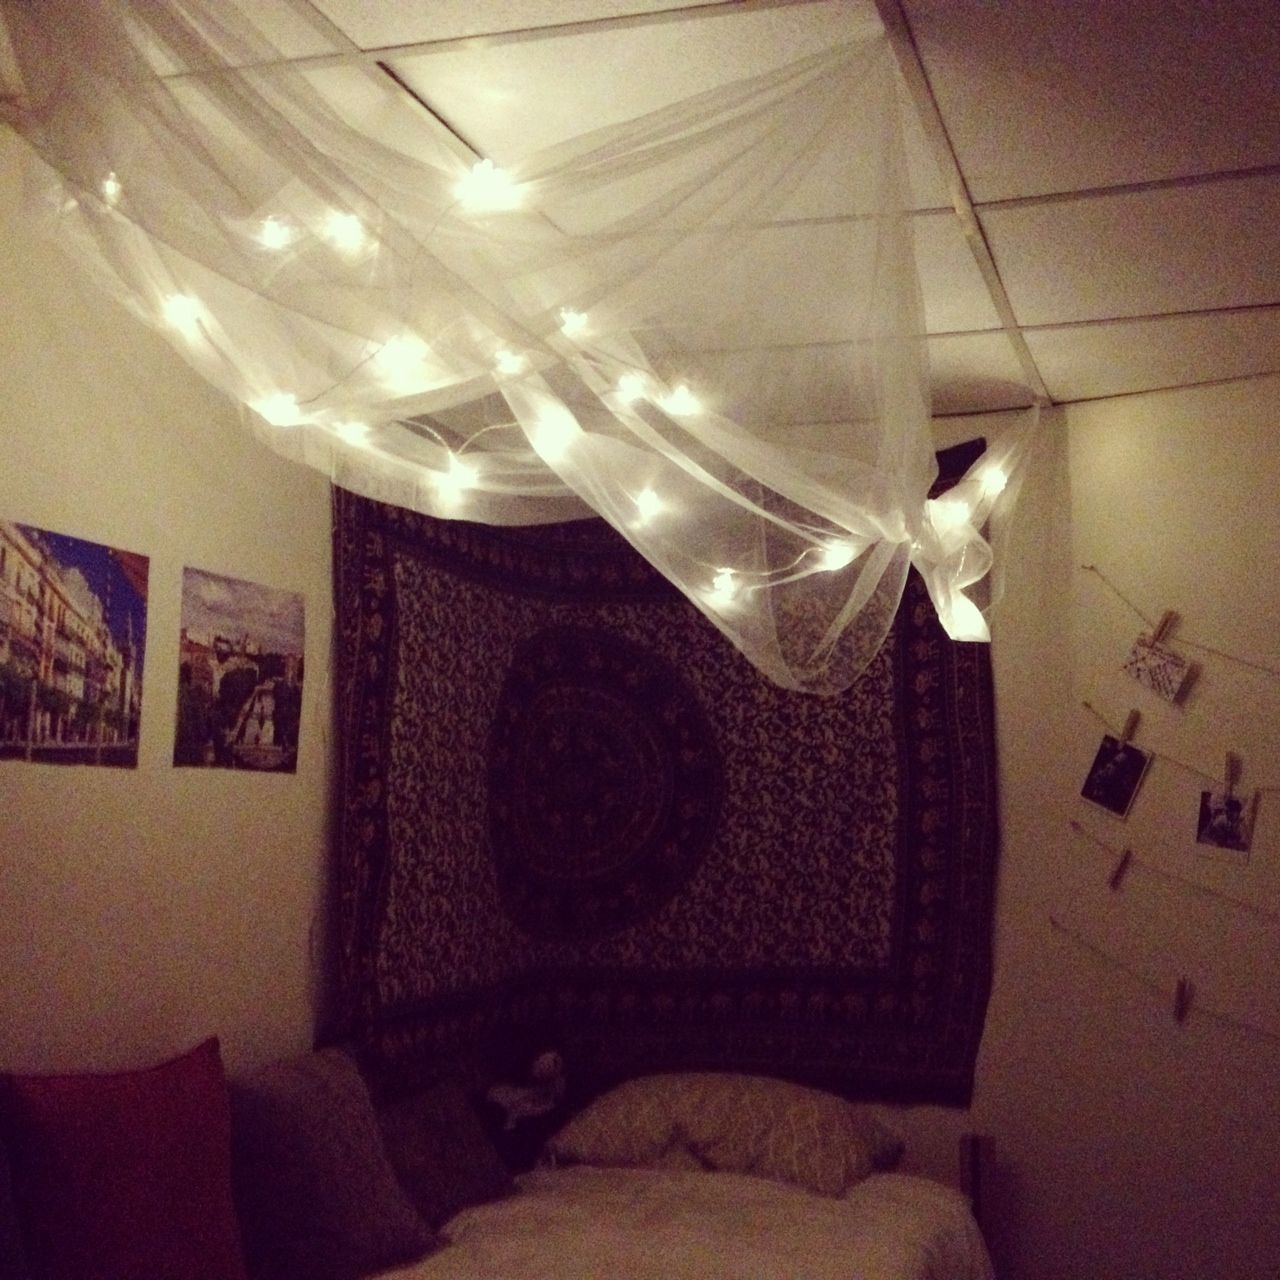 Diy bed canopy dorm - Diy Cozy For A Dorm Room Canopy Made Out Of Sheer Curtains From Ikea